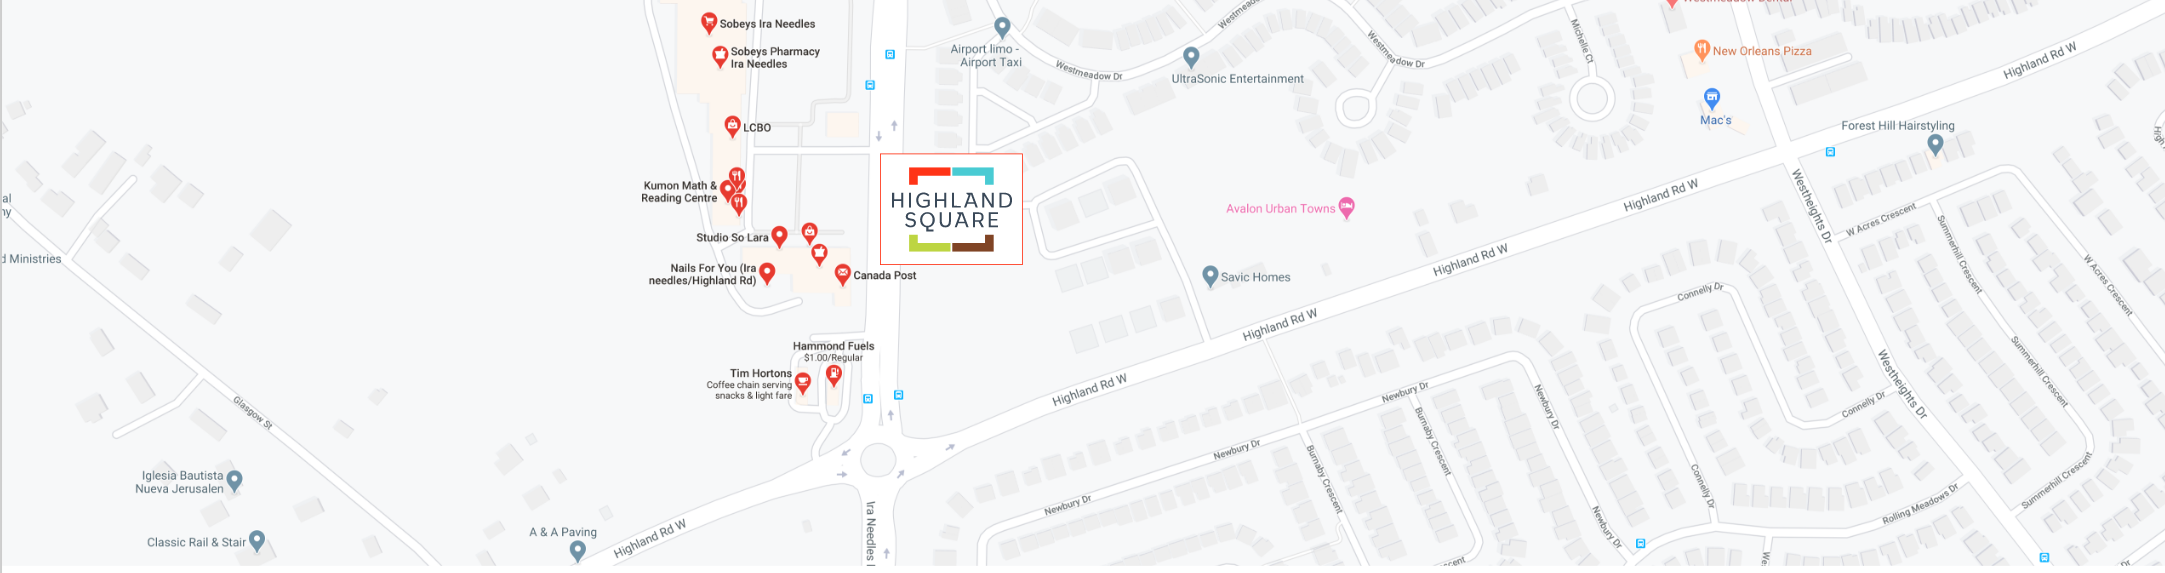 Highland Square in Kitchener - Privacy Policy